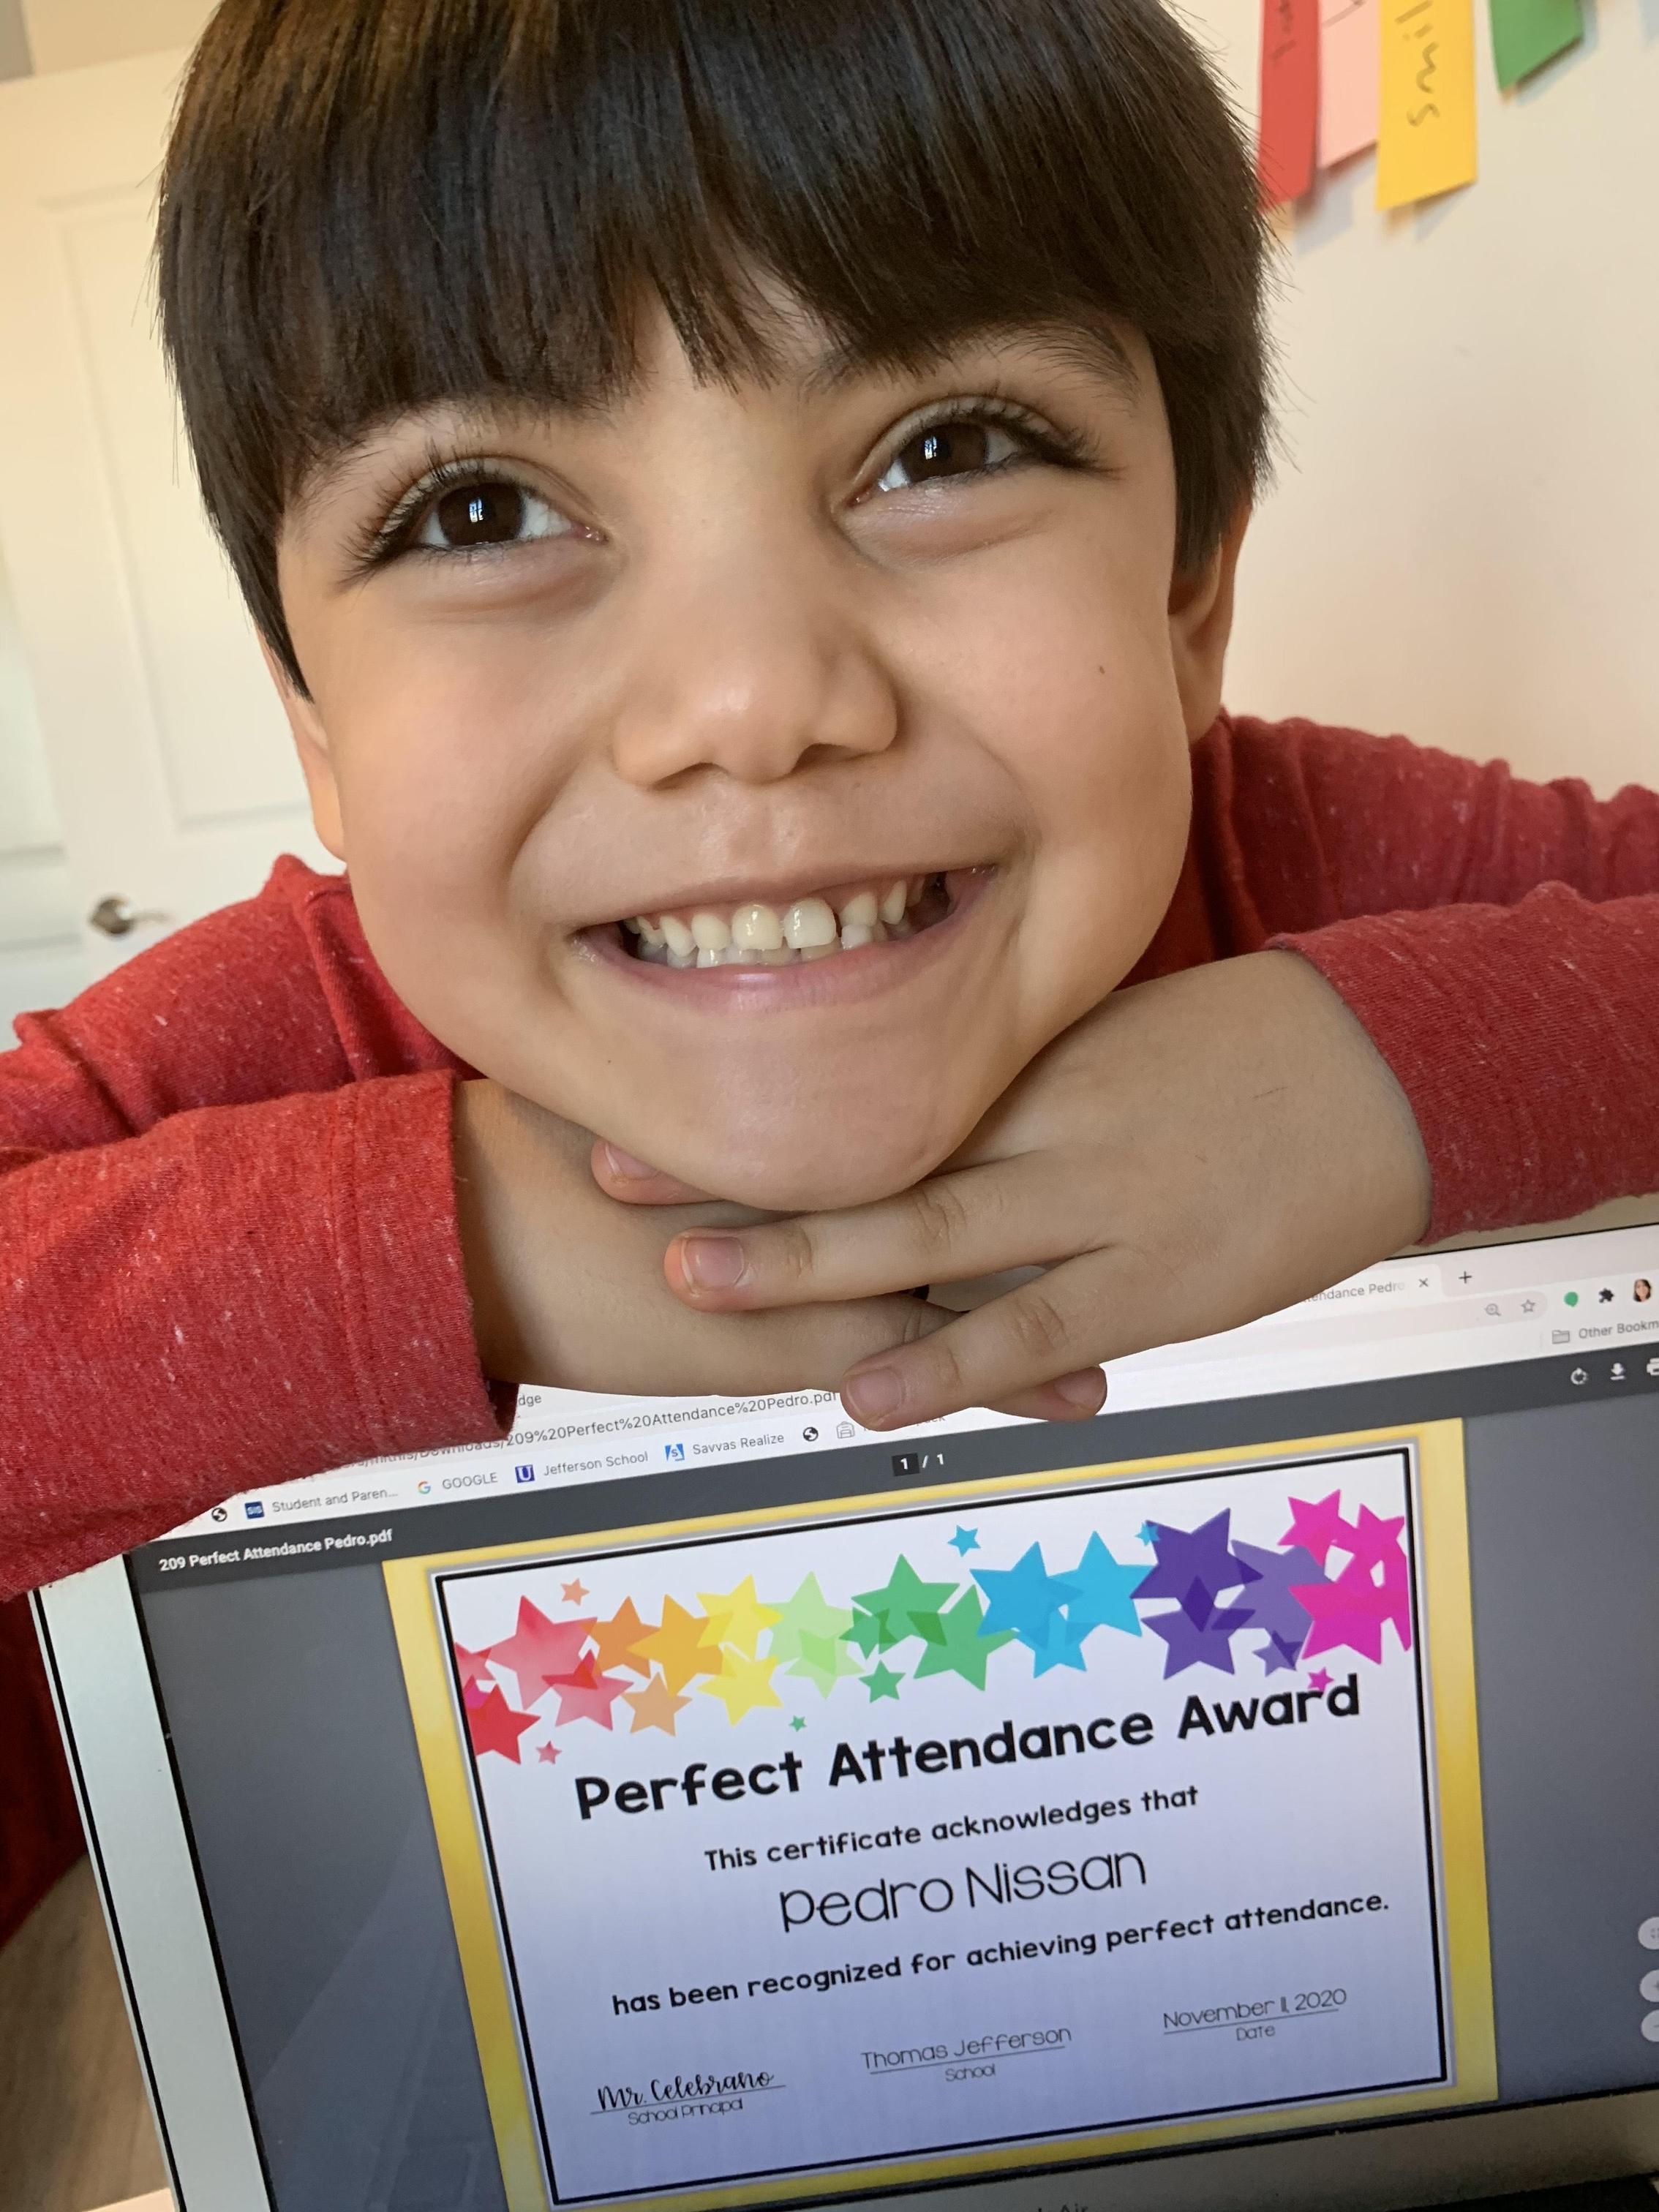 Pedro Nissan smiling with perfect attendance certificate